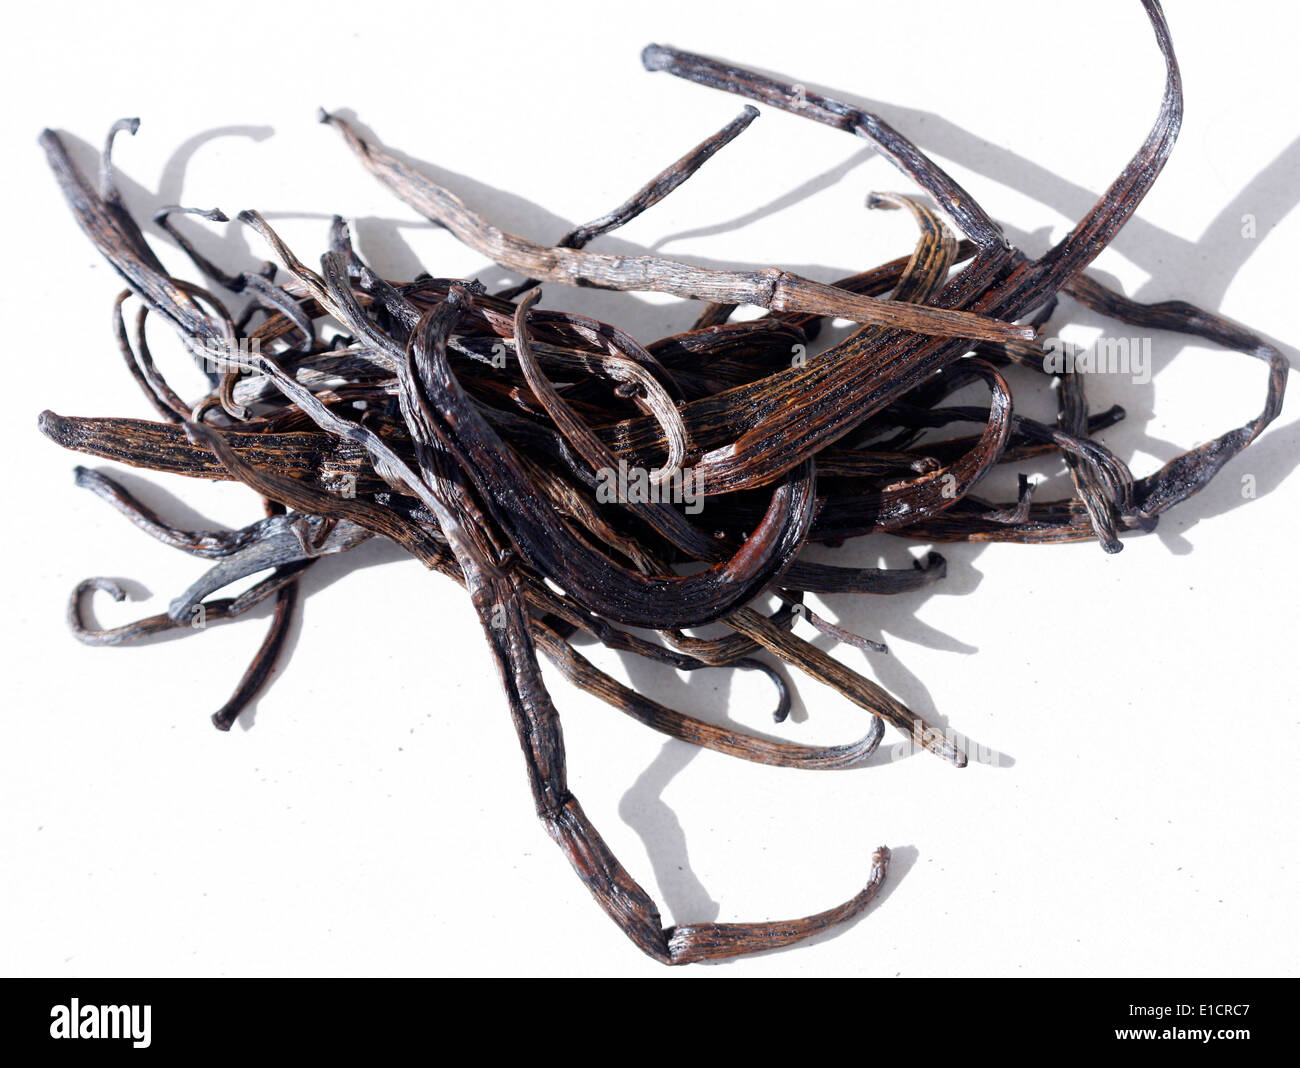 Low grade vanilla pods for use in making extract - Stock Image